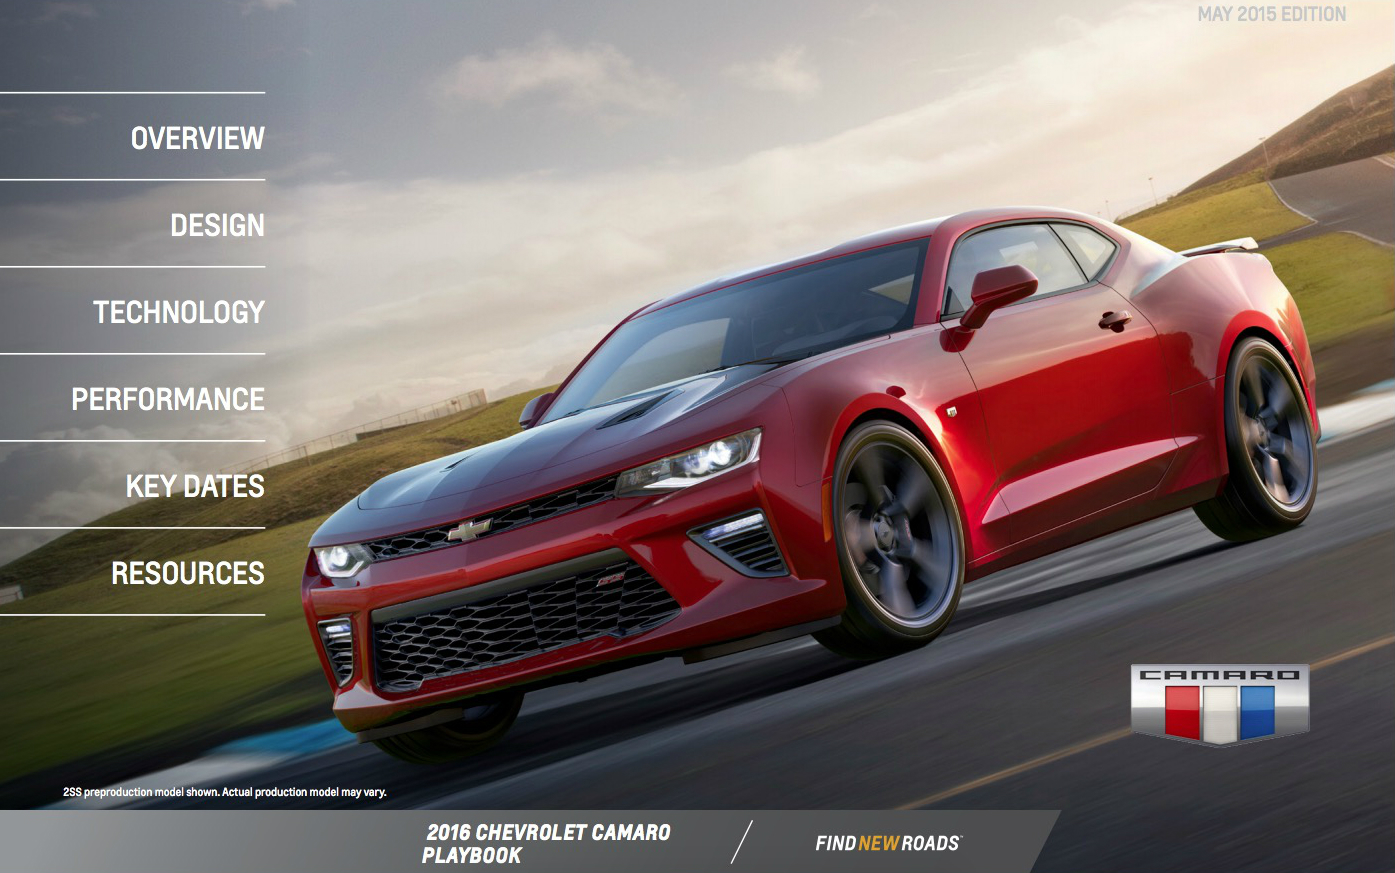 2016 Chevrolet Camaro Playbook Contains 15 Pages Of Goos